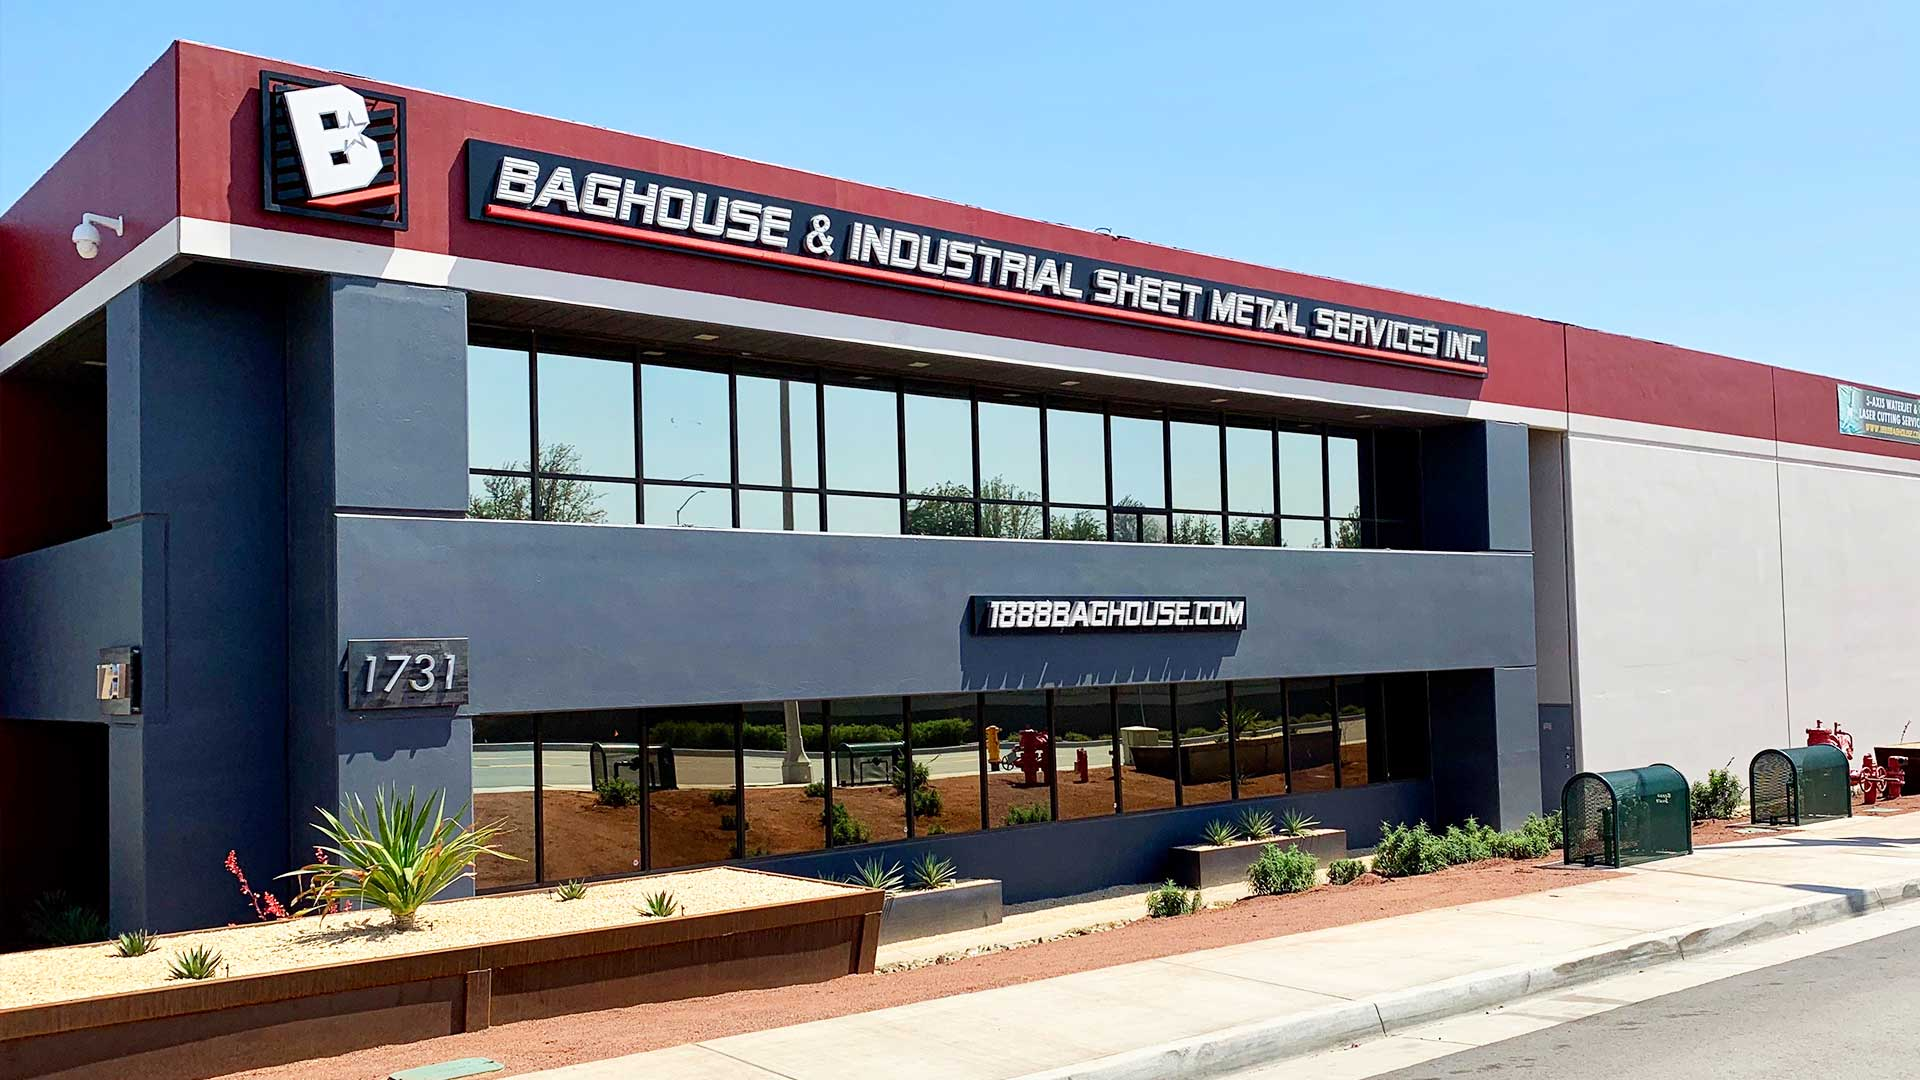 About Baghouse & Indsutrial Sheet Metal Services